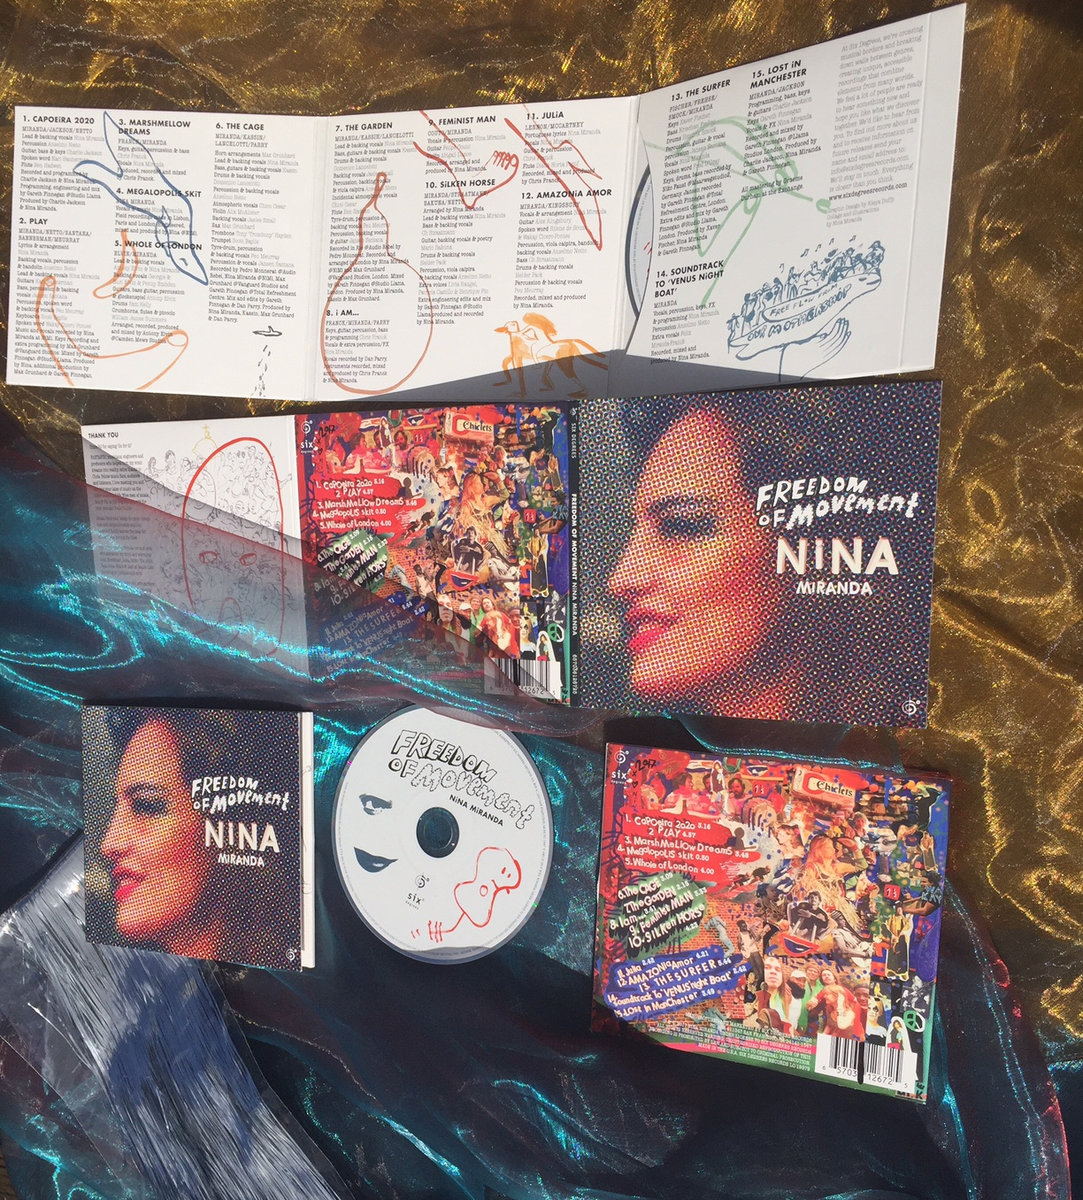 Nina Miranda: Whole of London (single) out now